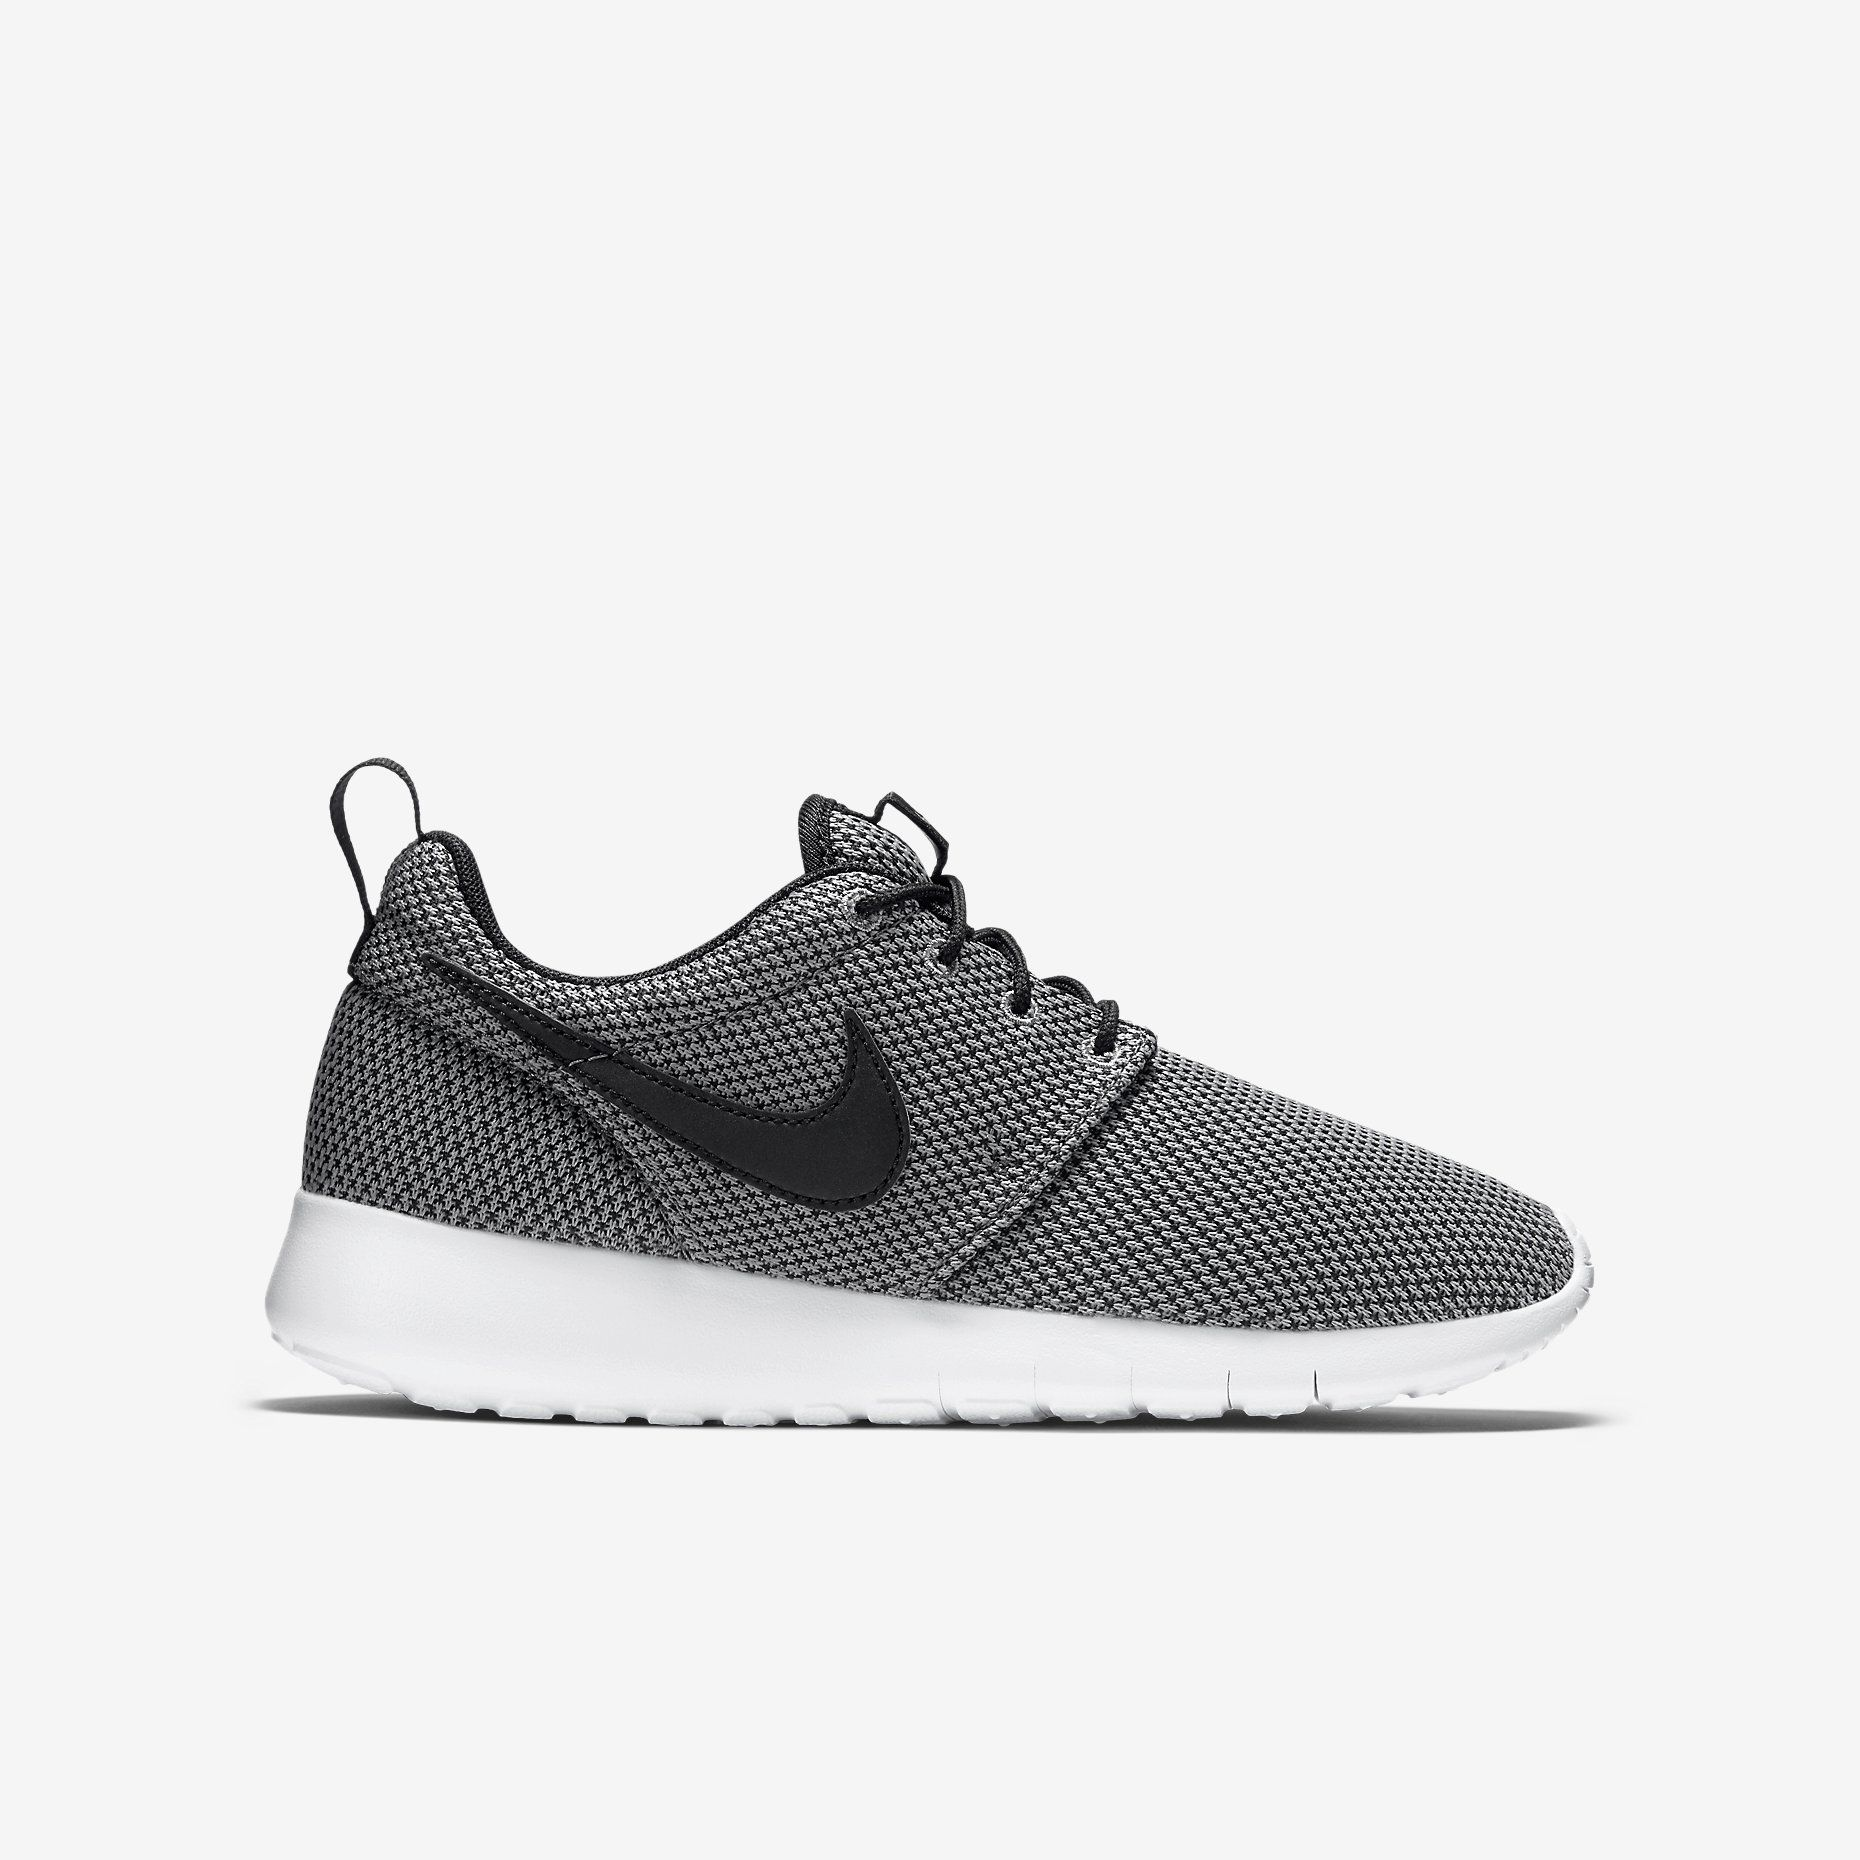 sports shoes c87b5 91678 Nike Roshe One – Chaussure pour Enfant (35,5-40). Nike Store FR